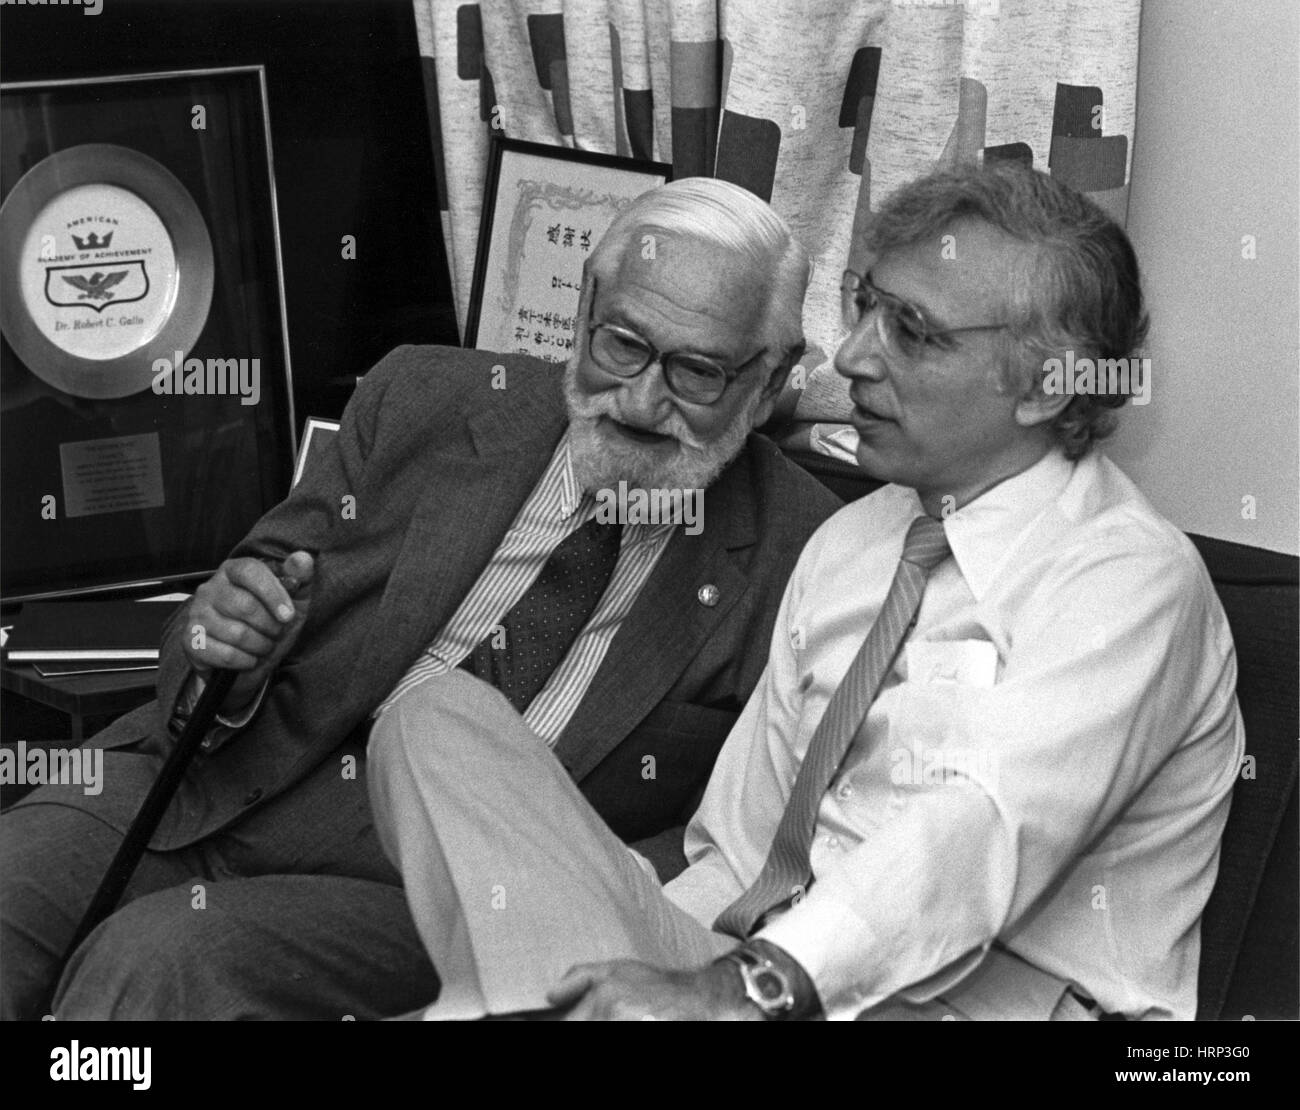 Albert Sabin and Robert Gallo, 1985 - Stock Image